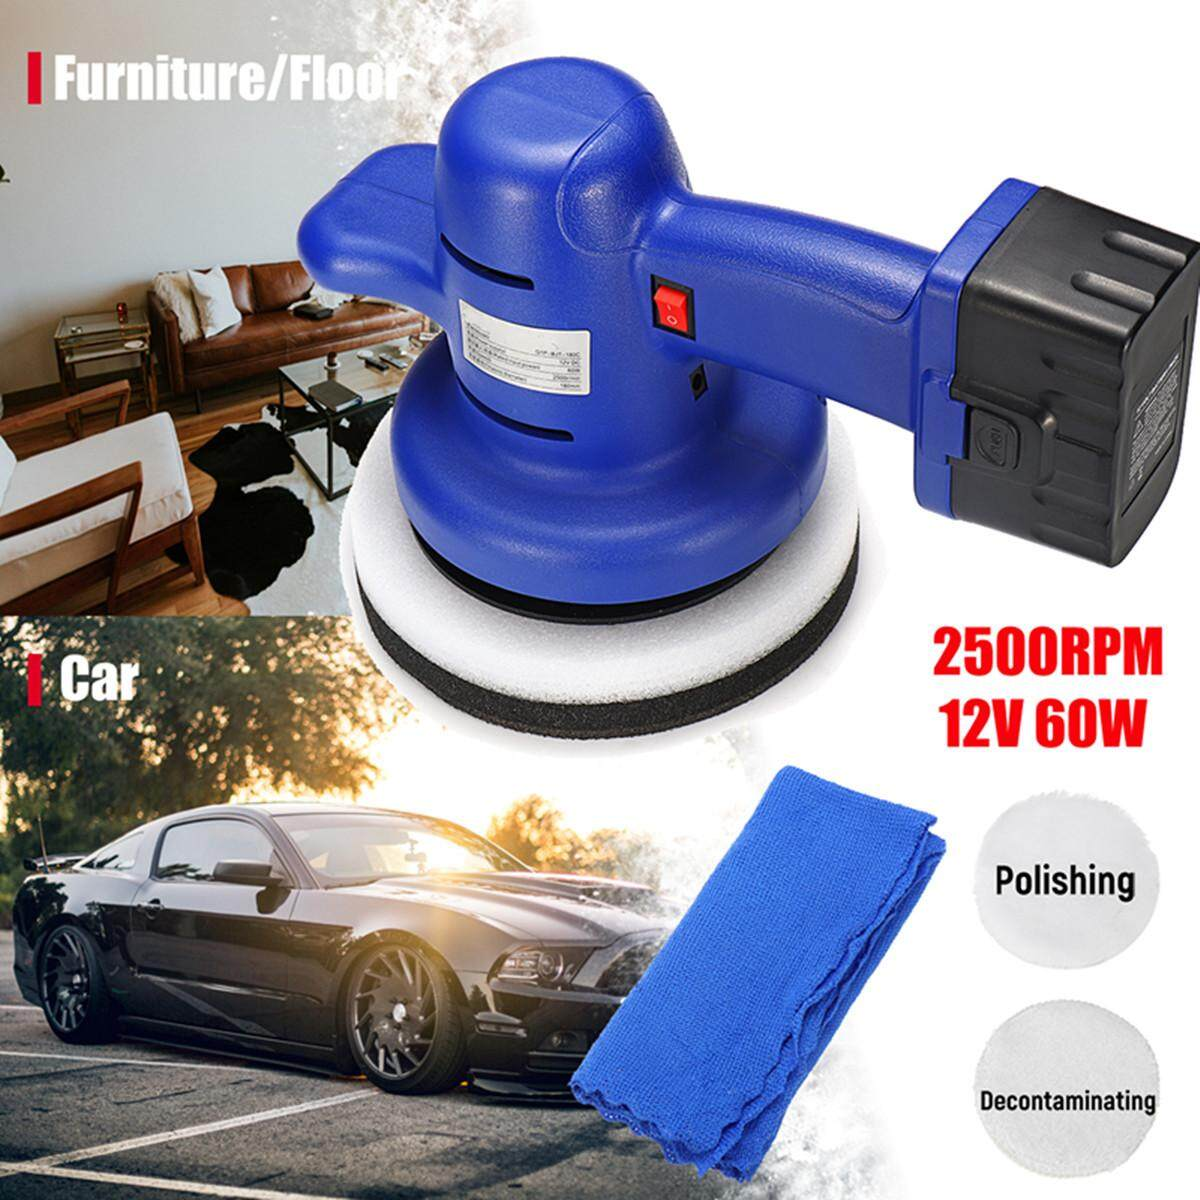 12v 2500rpm 7 Electric Cordless Car Polisher Buffer Car Polishing Waxer Tool By Audew.